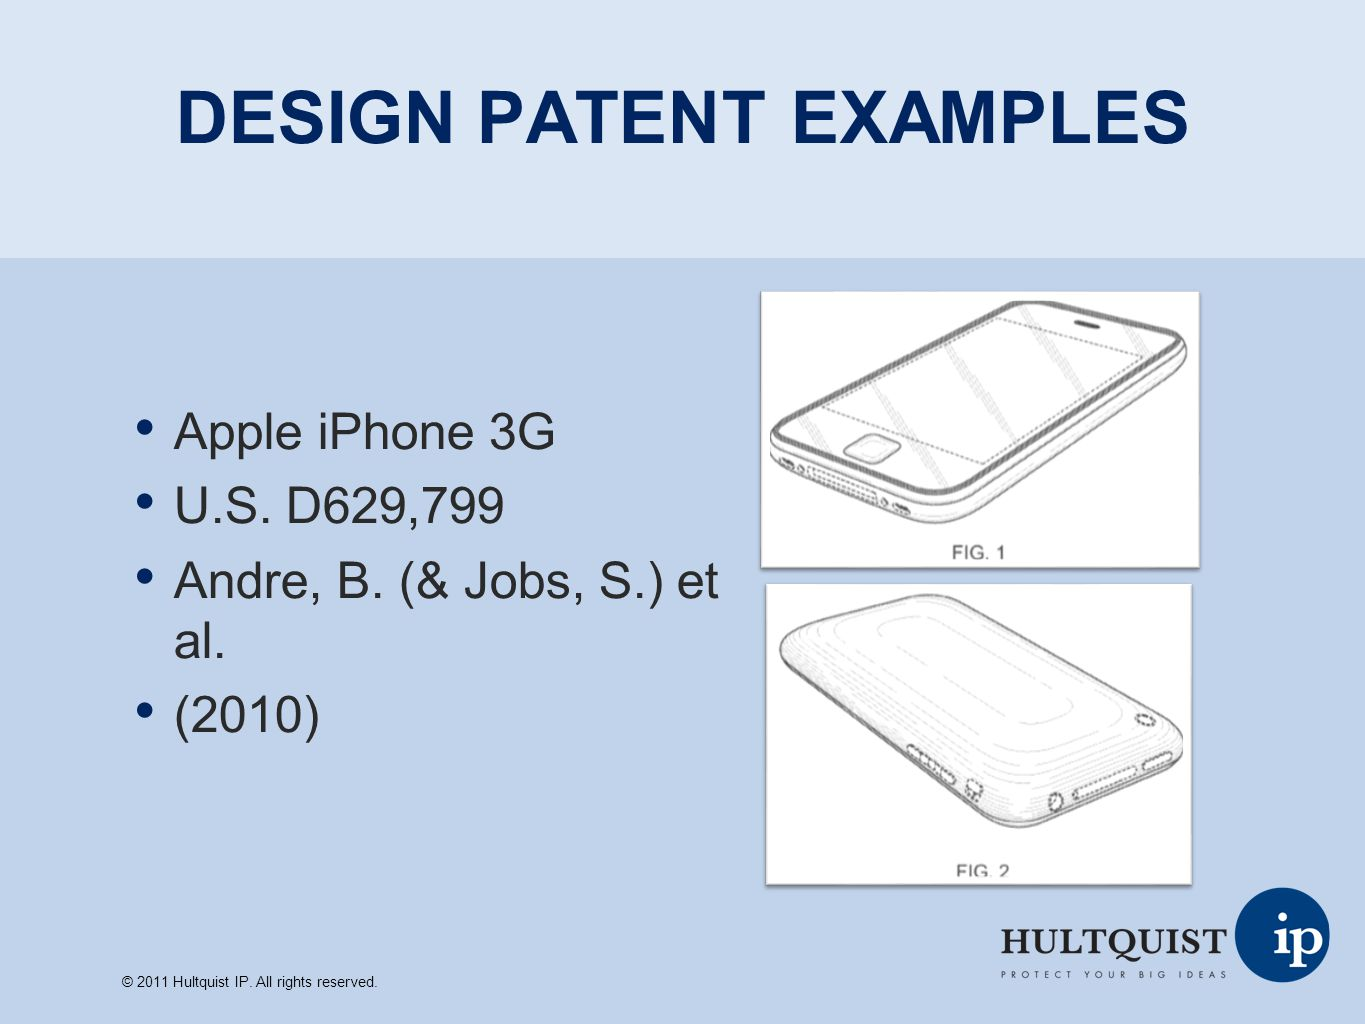 DESIGN PATENT EXAMPLES Apple iPhone 3G U.S. D629,799 Andre, B. (& Jobs, S.) et al. (2010) © 2011 Hultquist IP. All rights reserved.